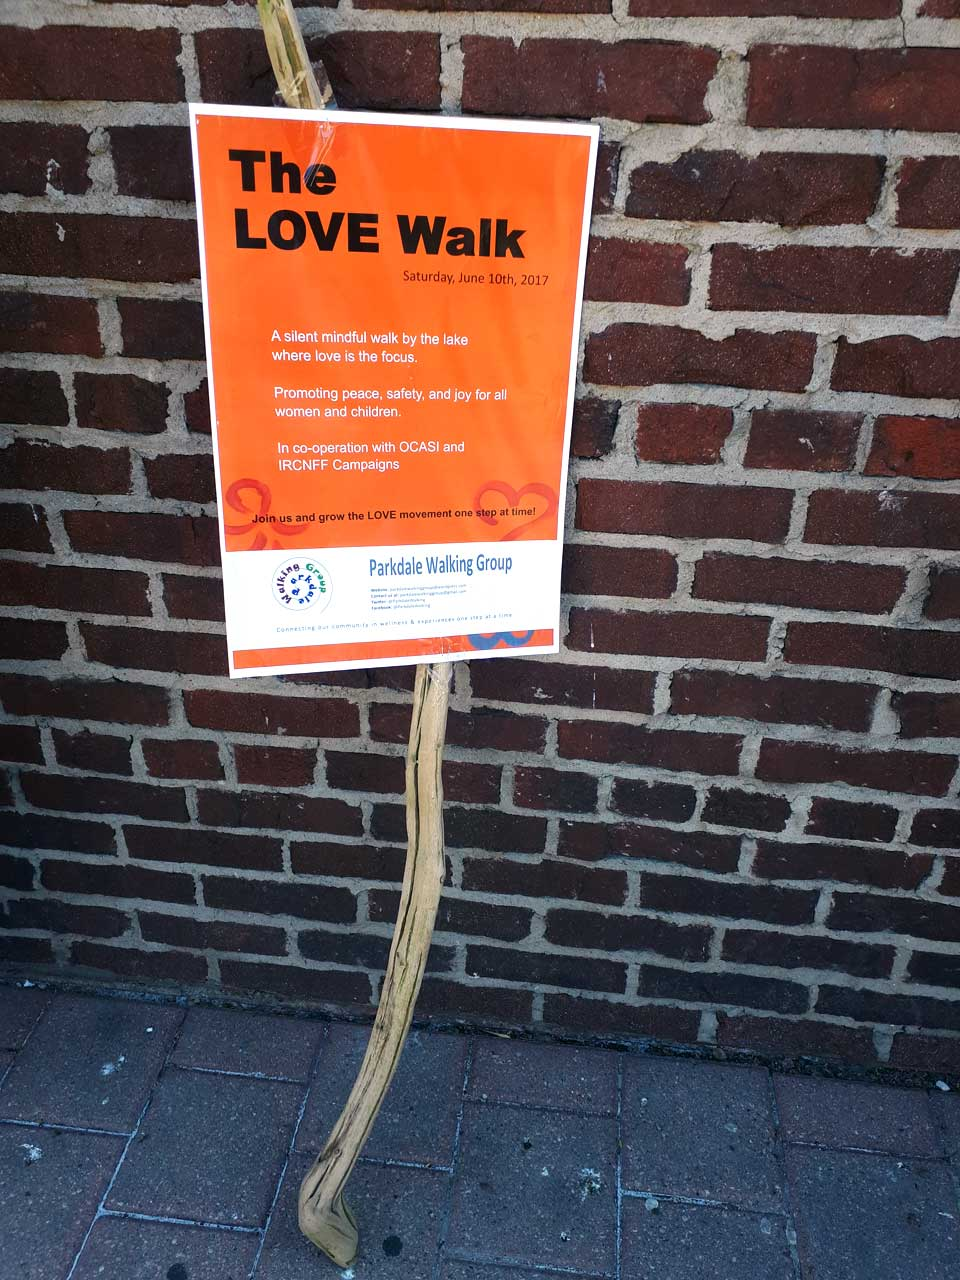 The #LoveWalk